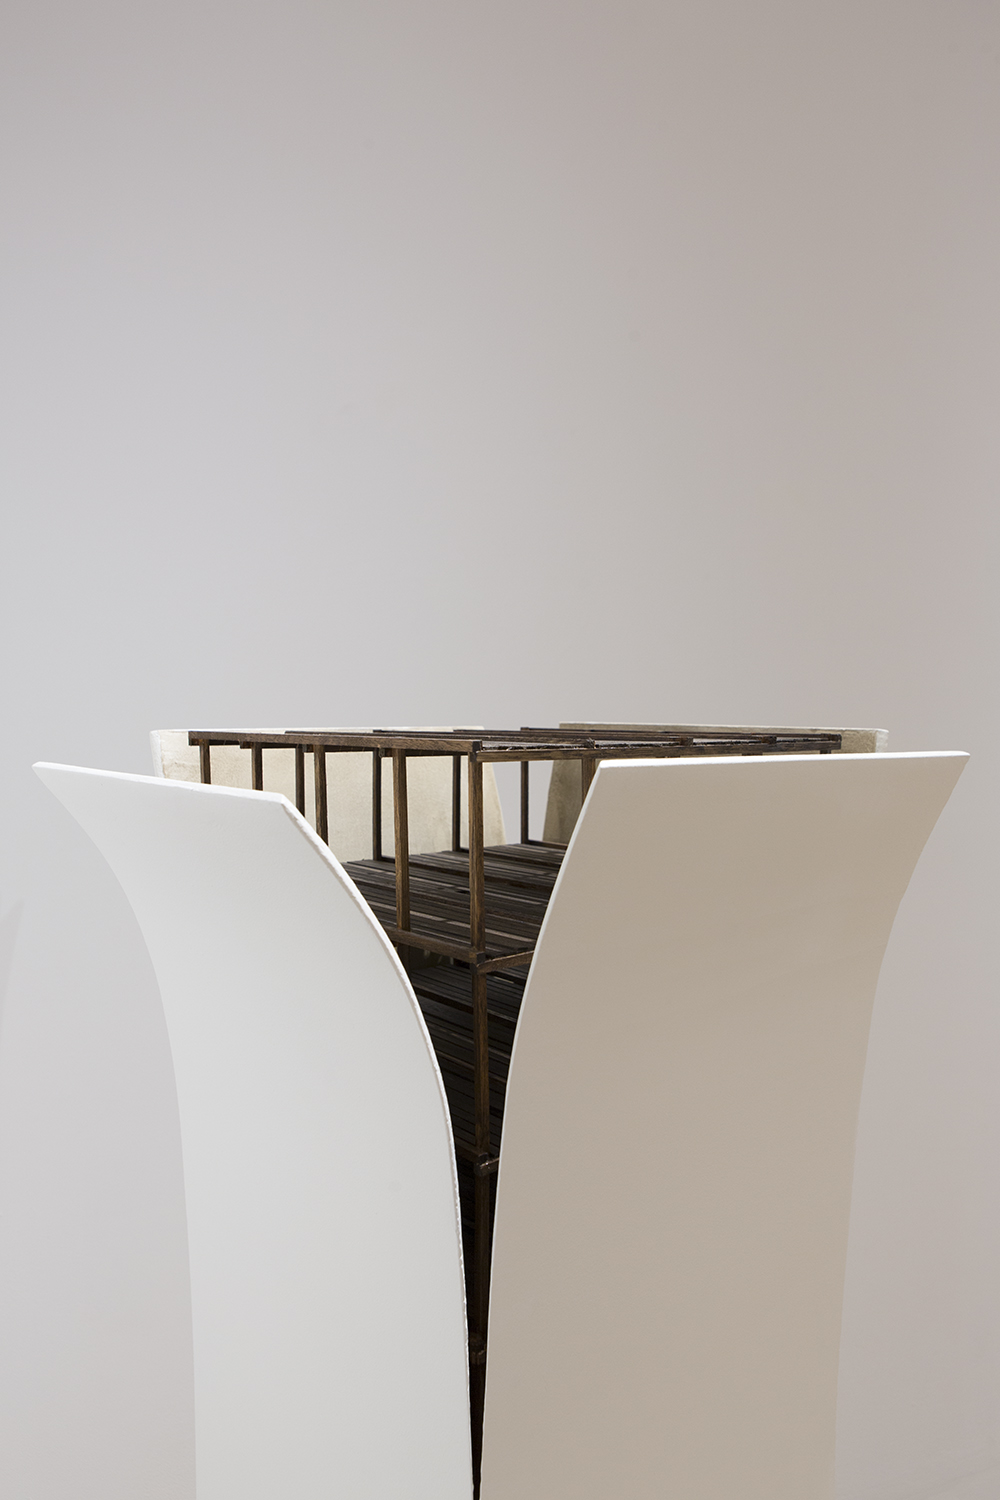 Pedestal piece from Clark's  2015 Emerging Artist of the Year  exhibit at Pittsburgh Center for the Arts. Courtesy of Seth Clark.